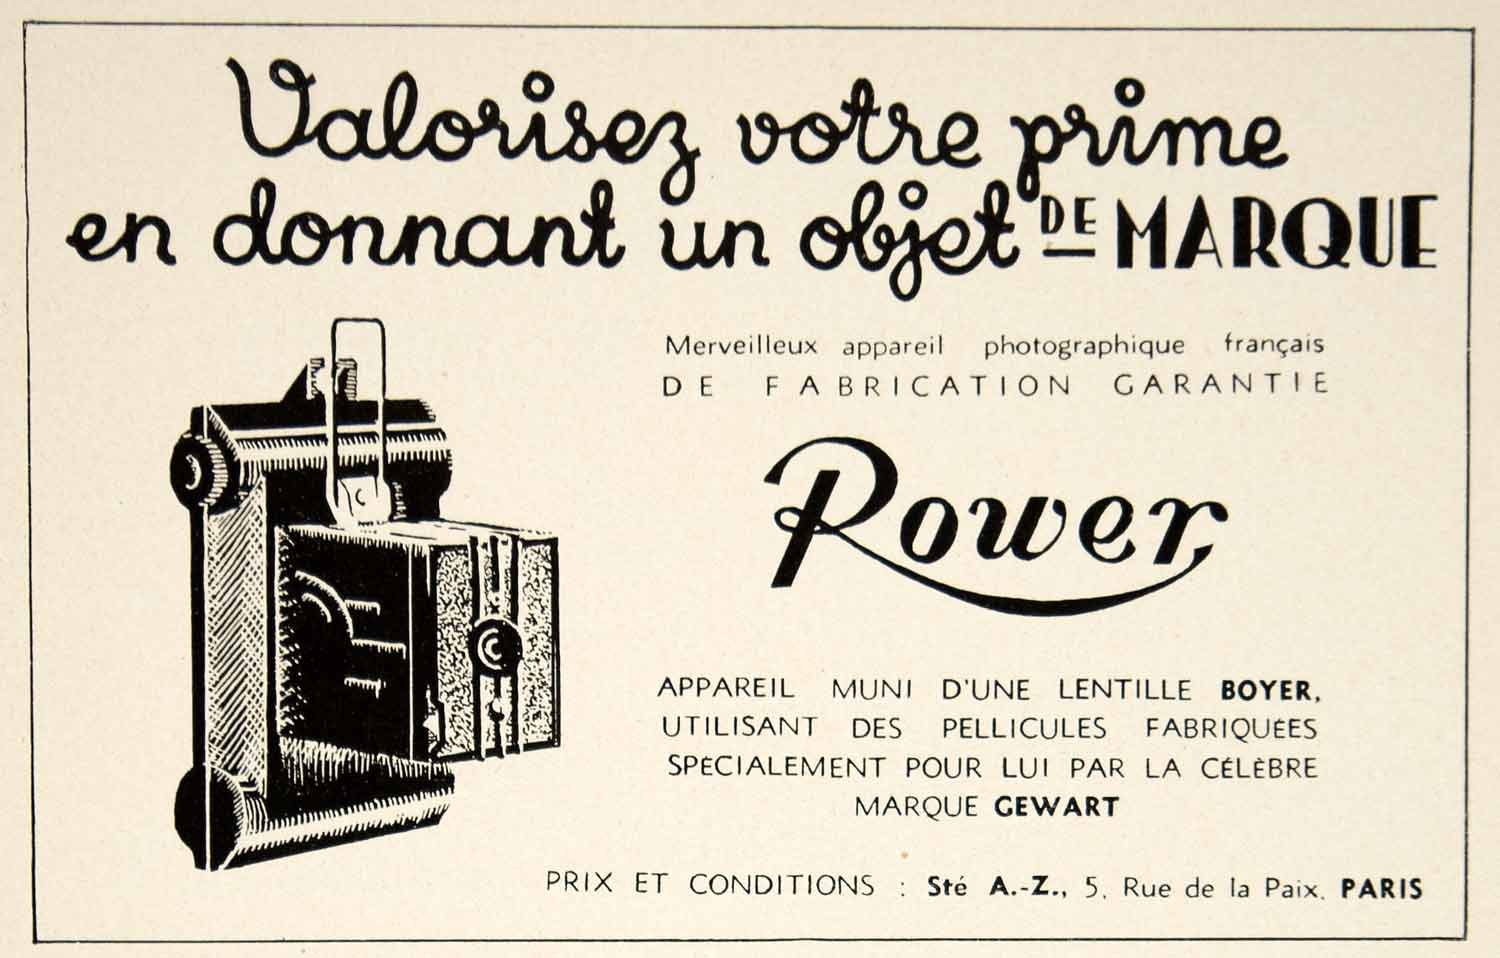 1935 Ad Vintage French Rower Camera Photography Photographie Francais VEN9